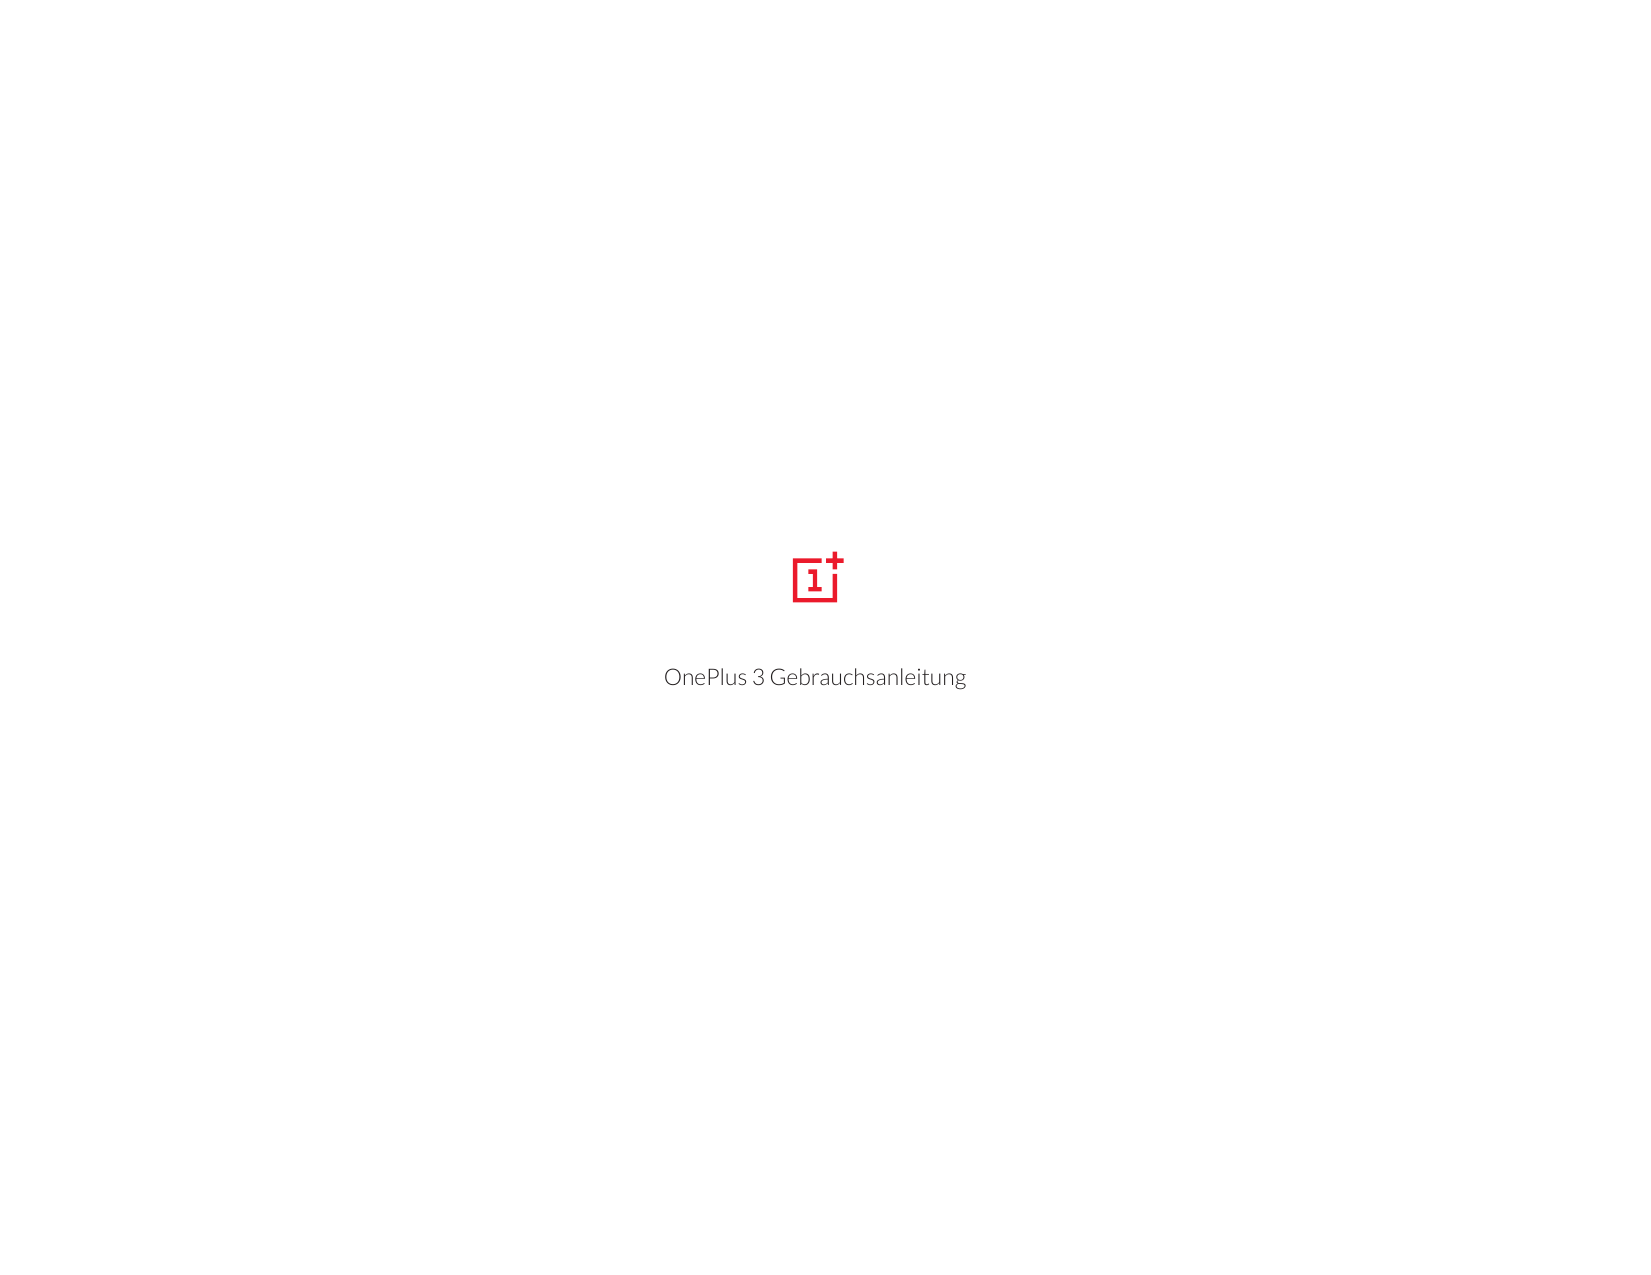 Bedienungsanleitung - OnePlus 3 - Android 6.0 - Device Guides